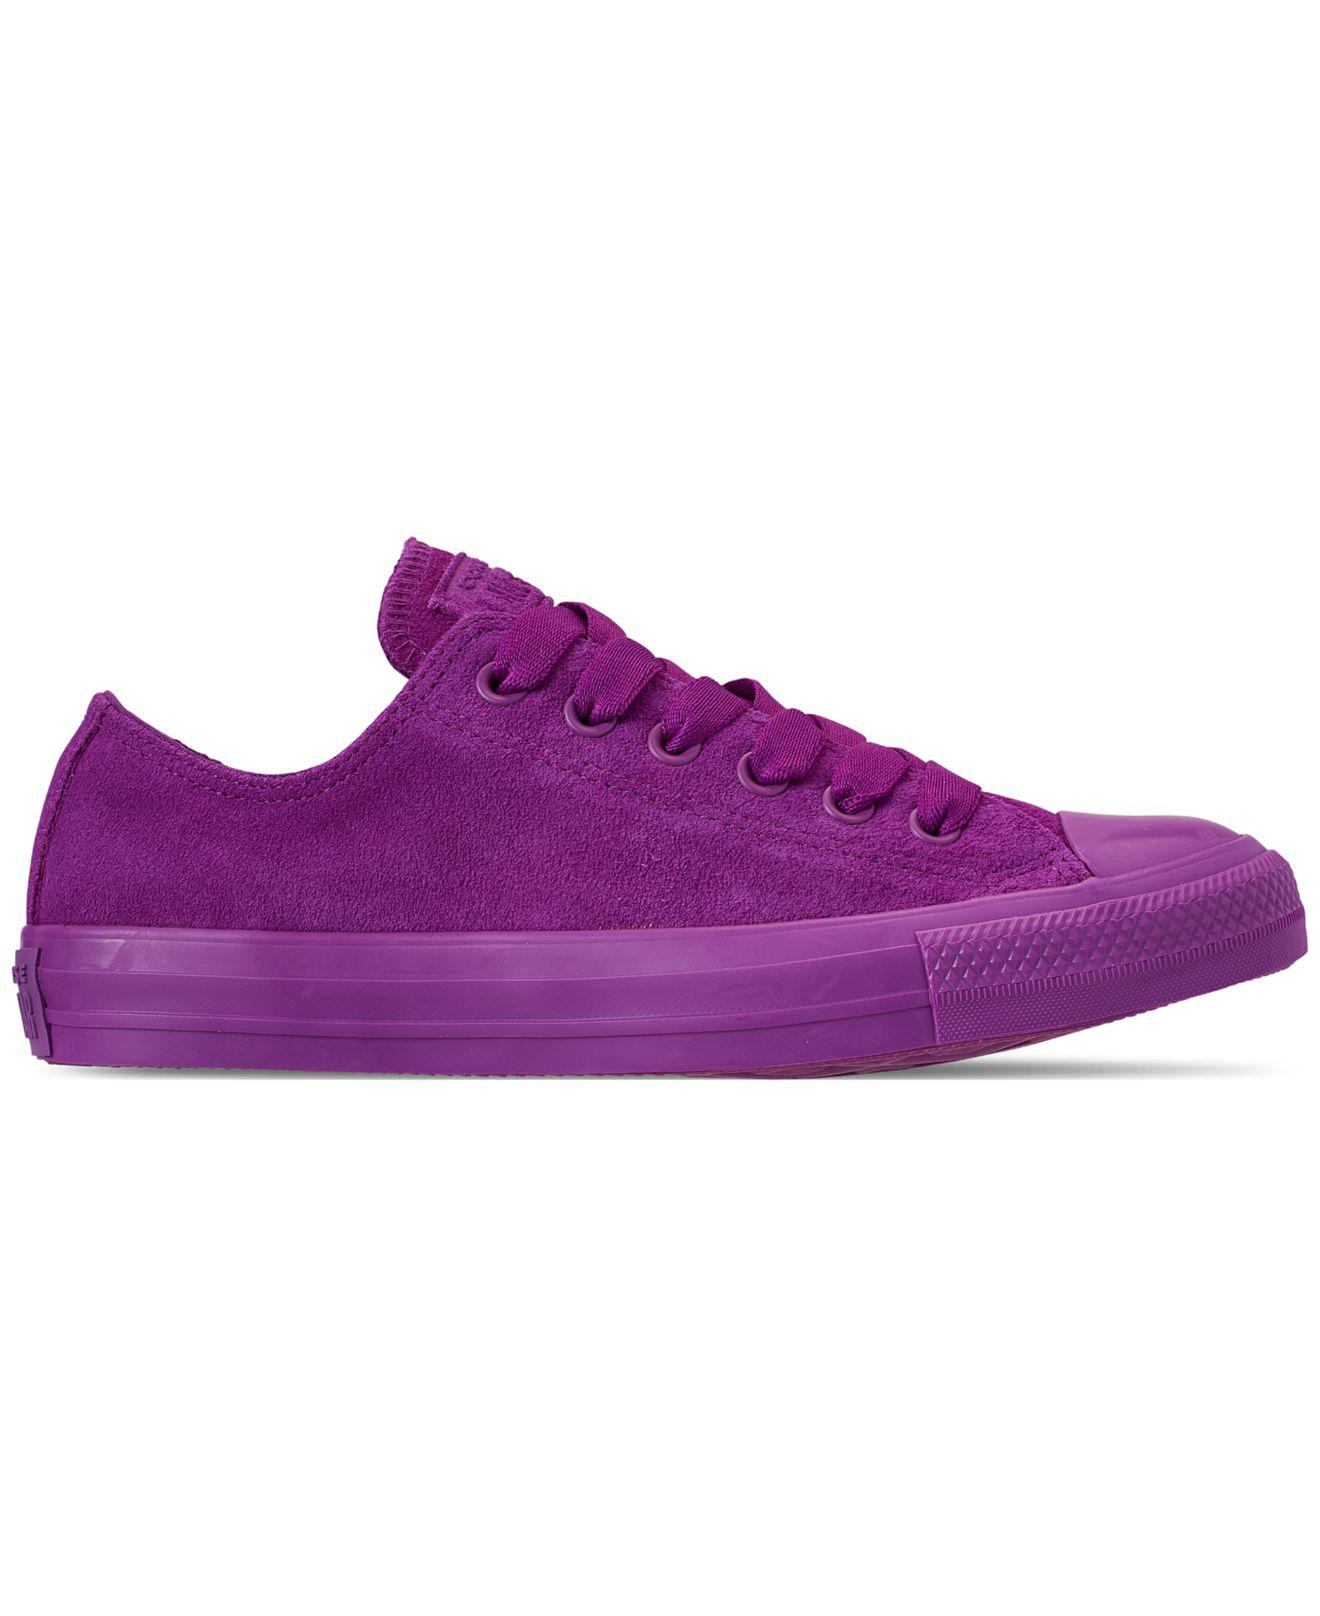 e27e78ce0f1 Lyst - Converse Unisex Chuck Taylor All Star Suede Mono Color Low Top  Casual Sneakers From Finish Line in Purple